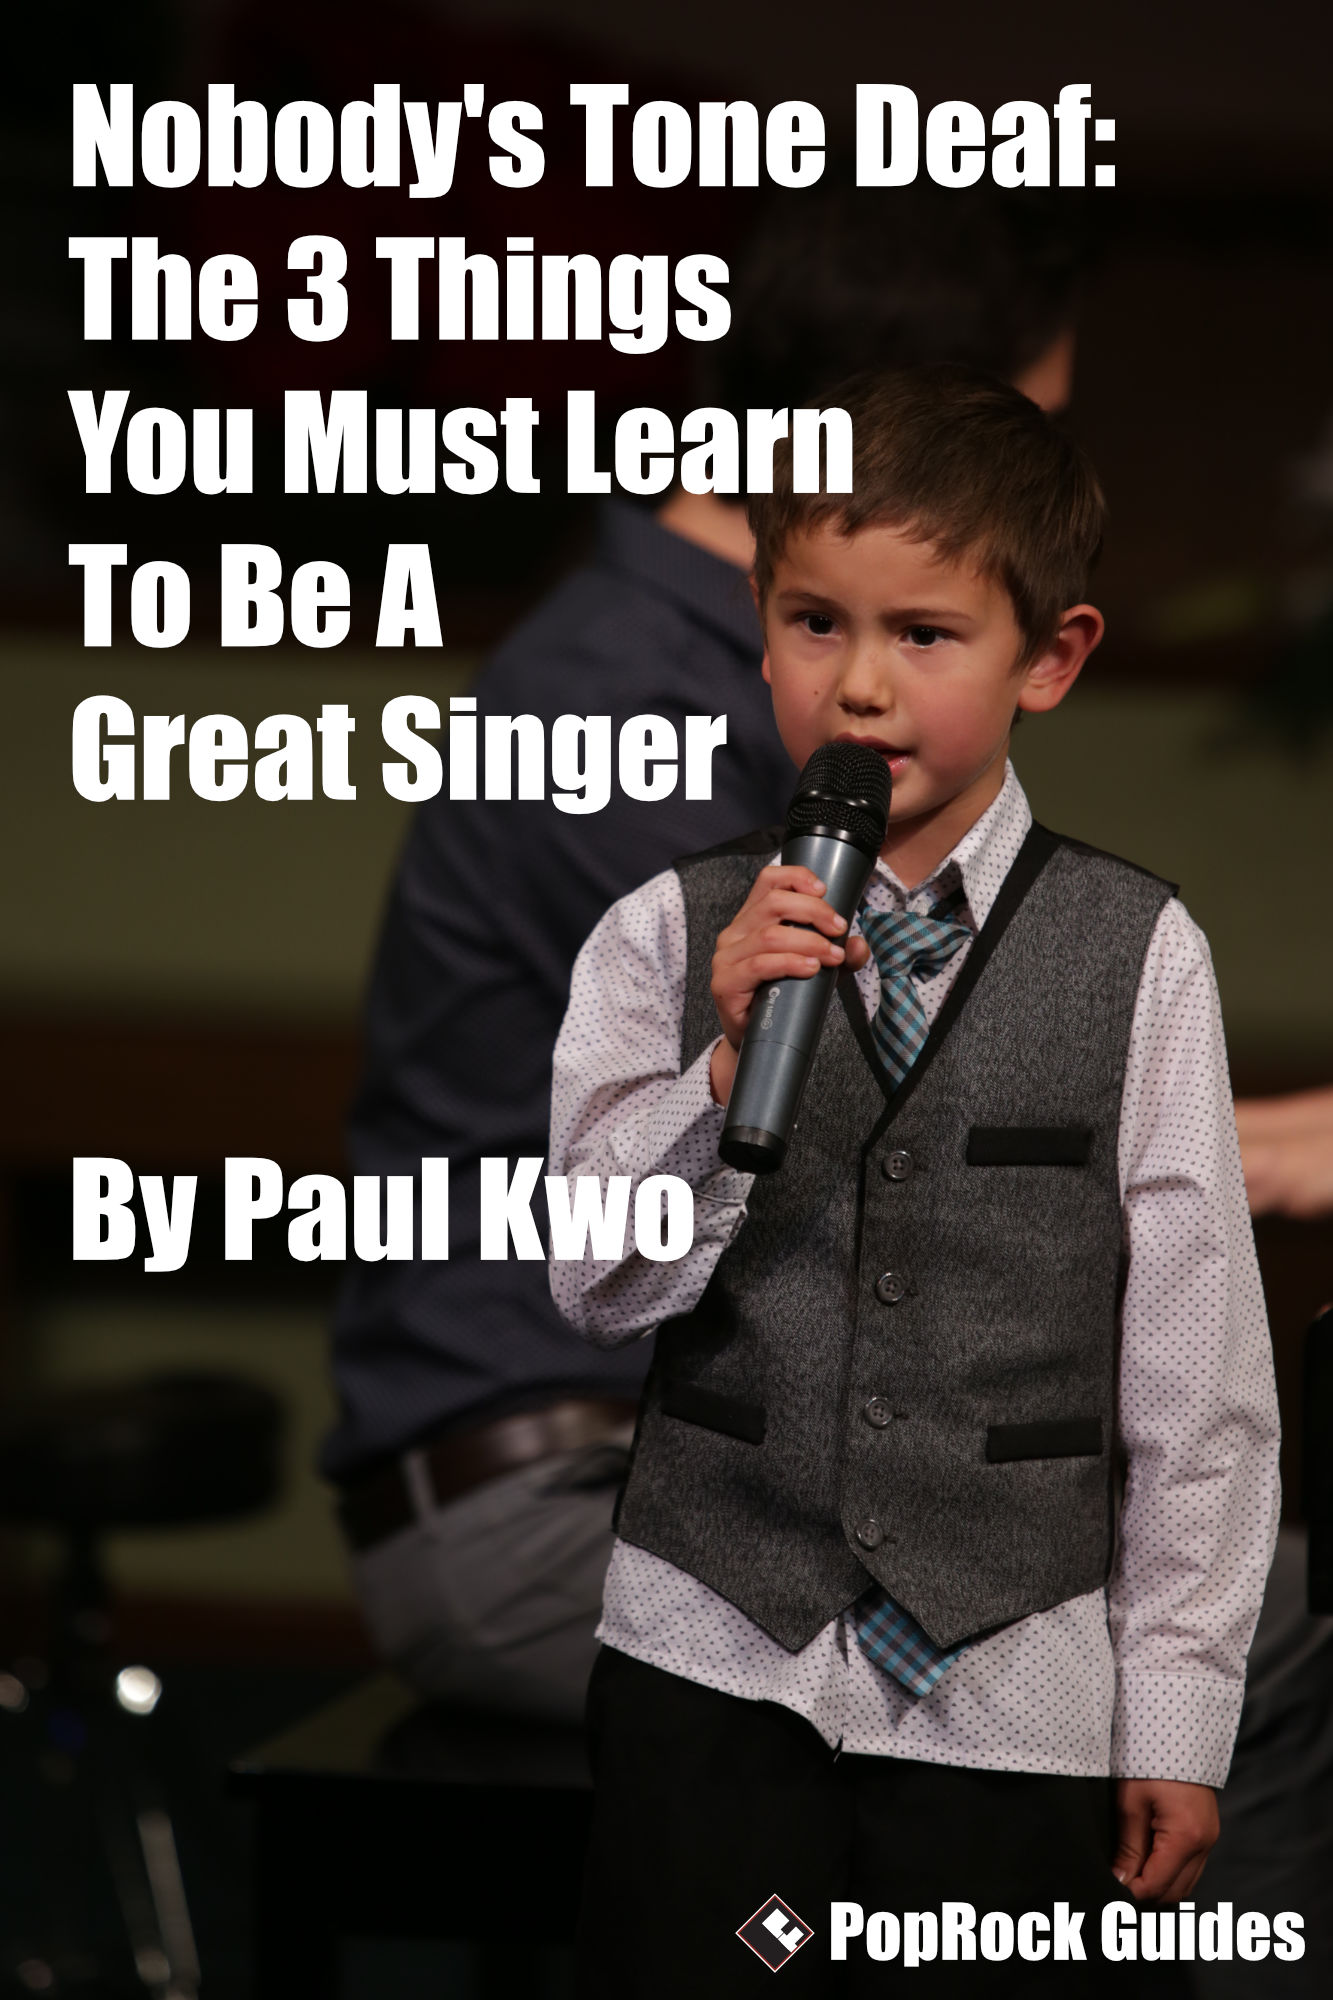 Nobody's Tone Deaf: The 3 Things You Must Learn to be a Great Singer